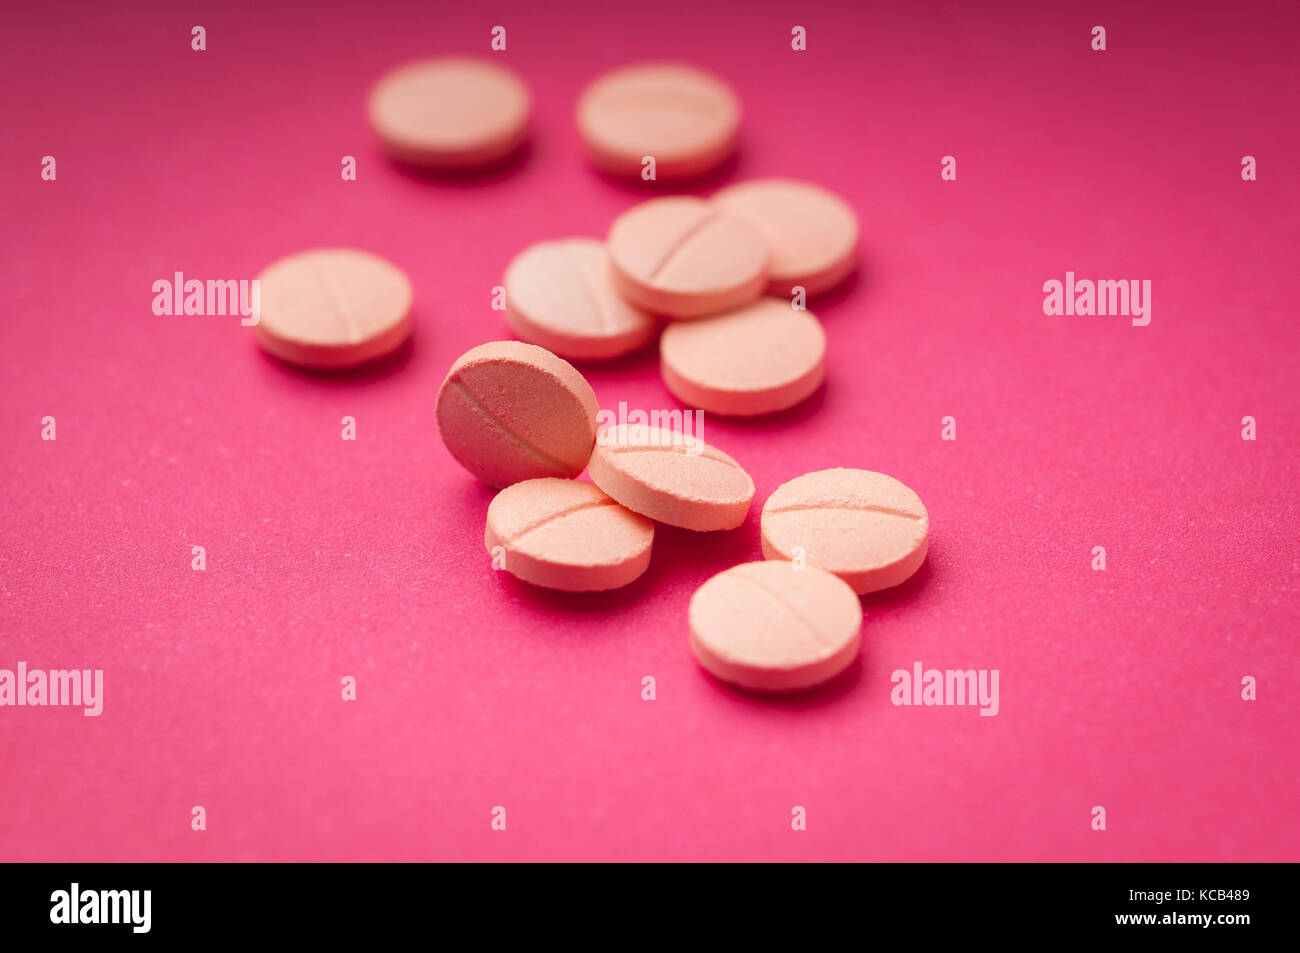 Background of color pills for use in graphic design in medical applications, brochures, presentations and publications. Stock Photo